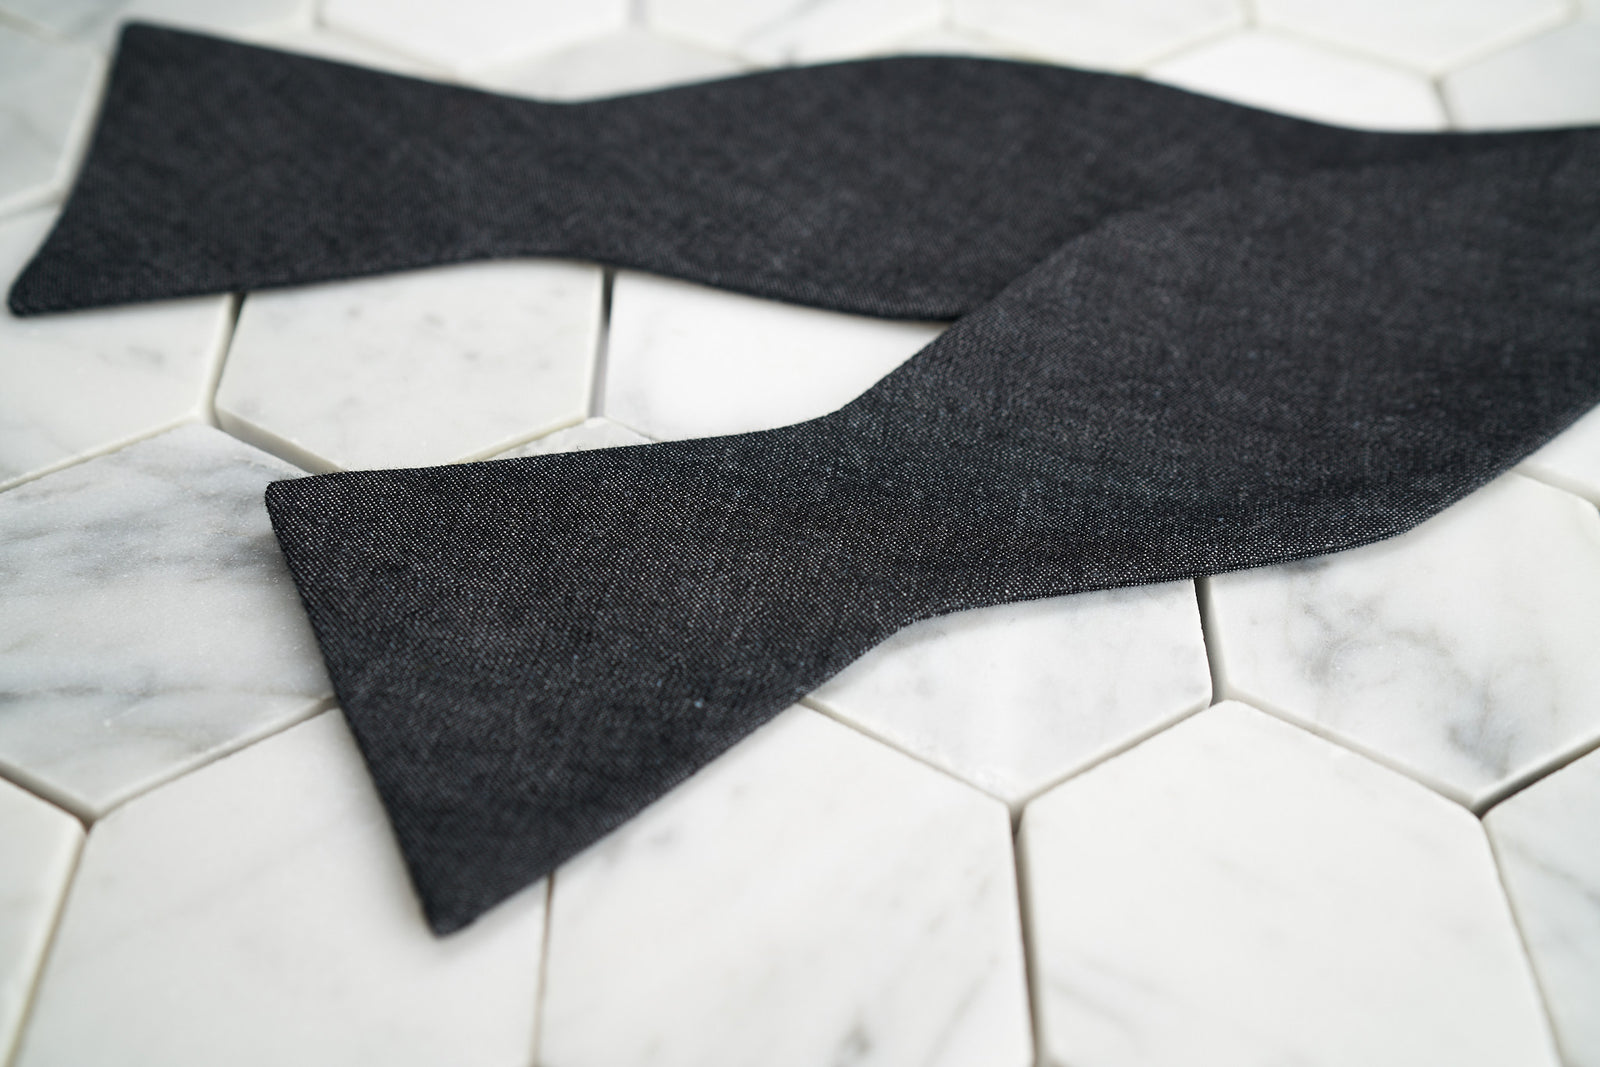 An image of Dear Martian's denim black bow tie untied, lying against a hex tiled background.